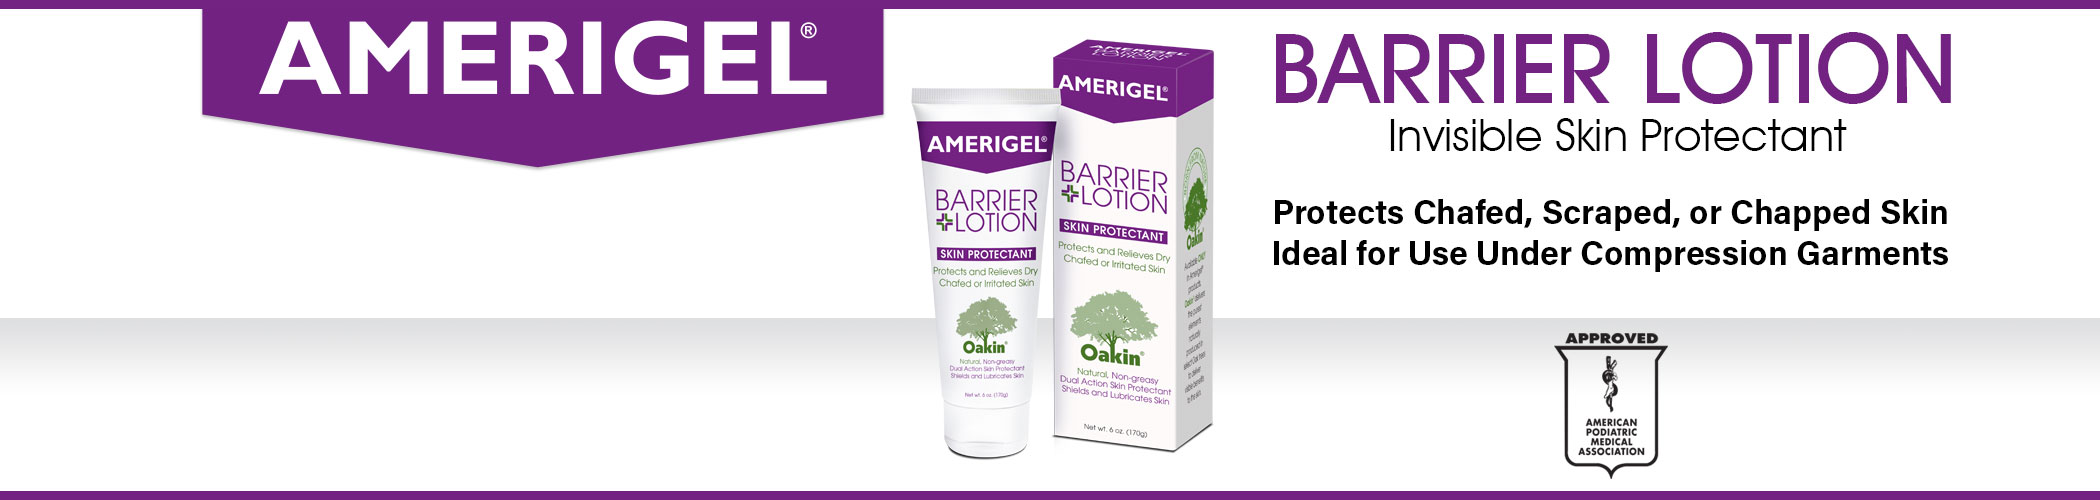 AMERIGEL® Barrier Lotion